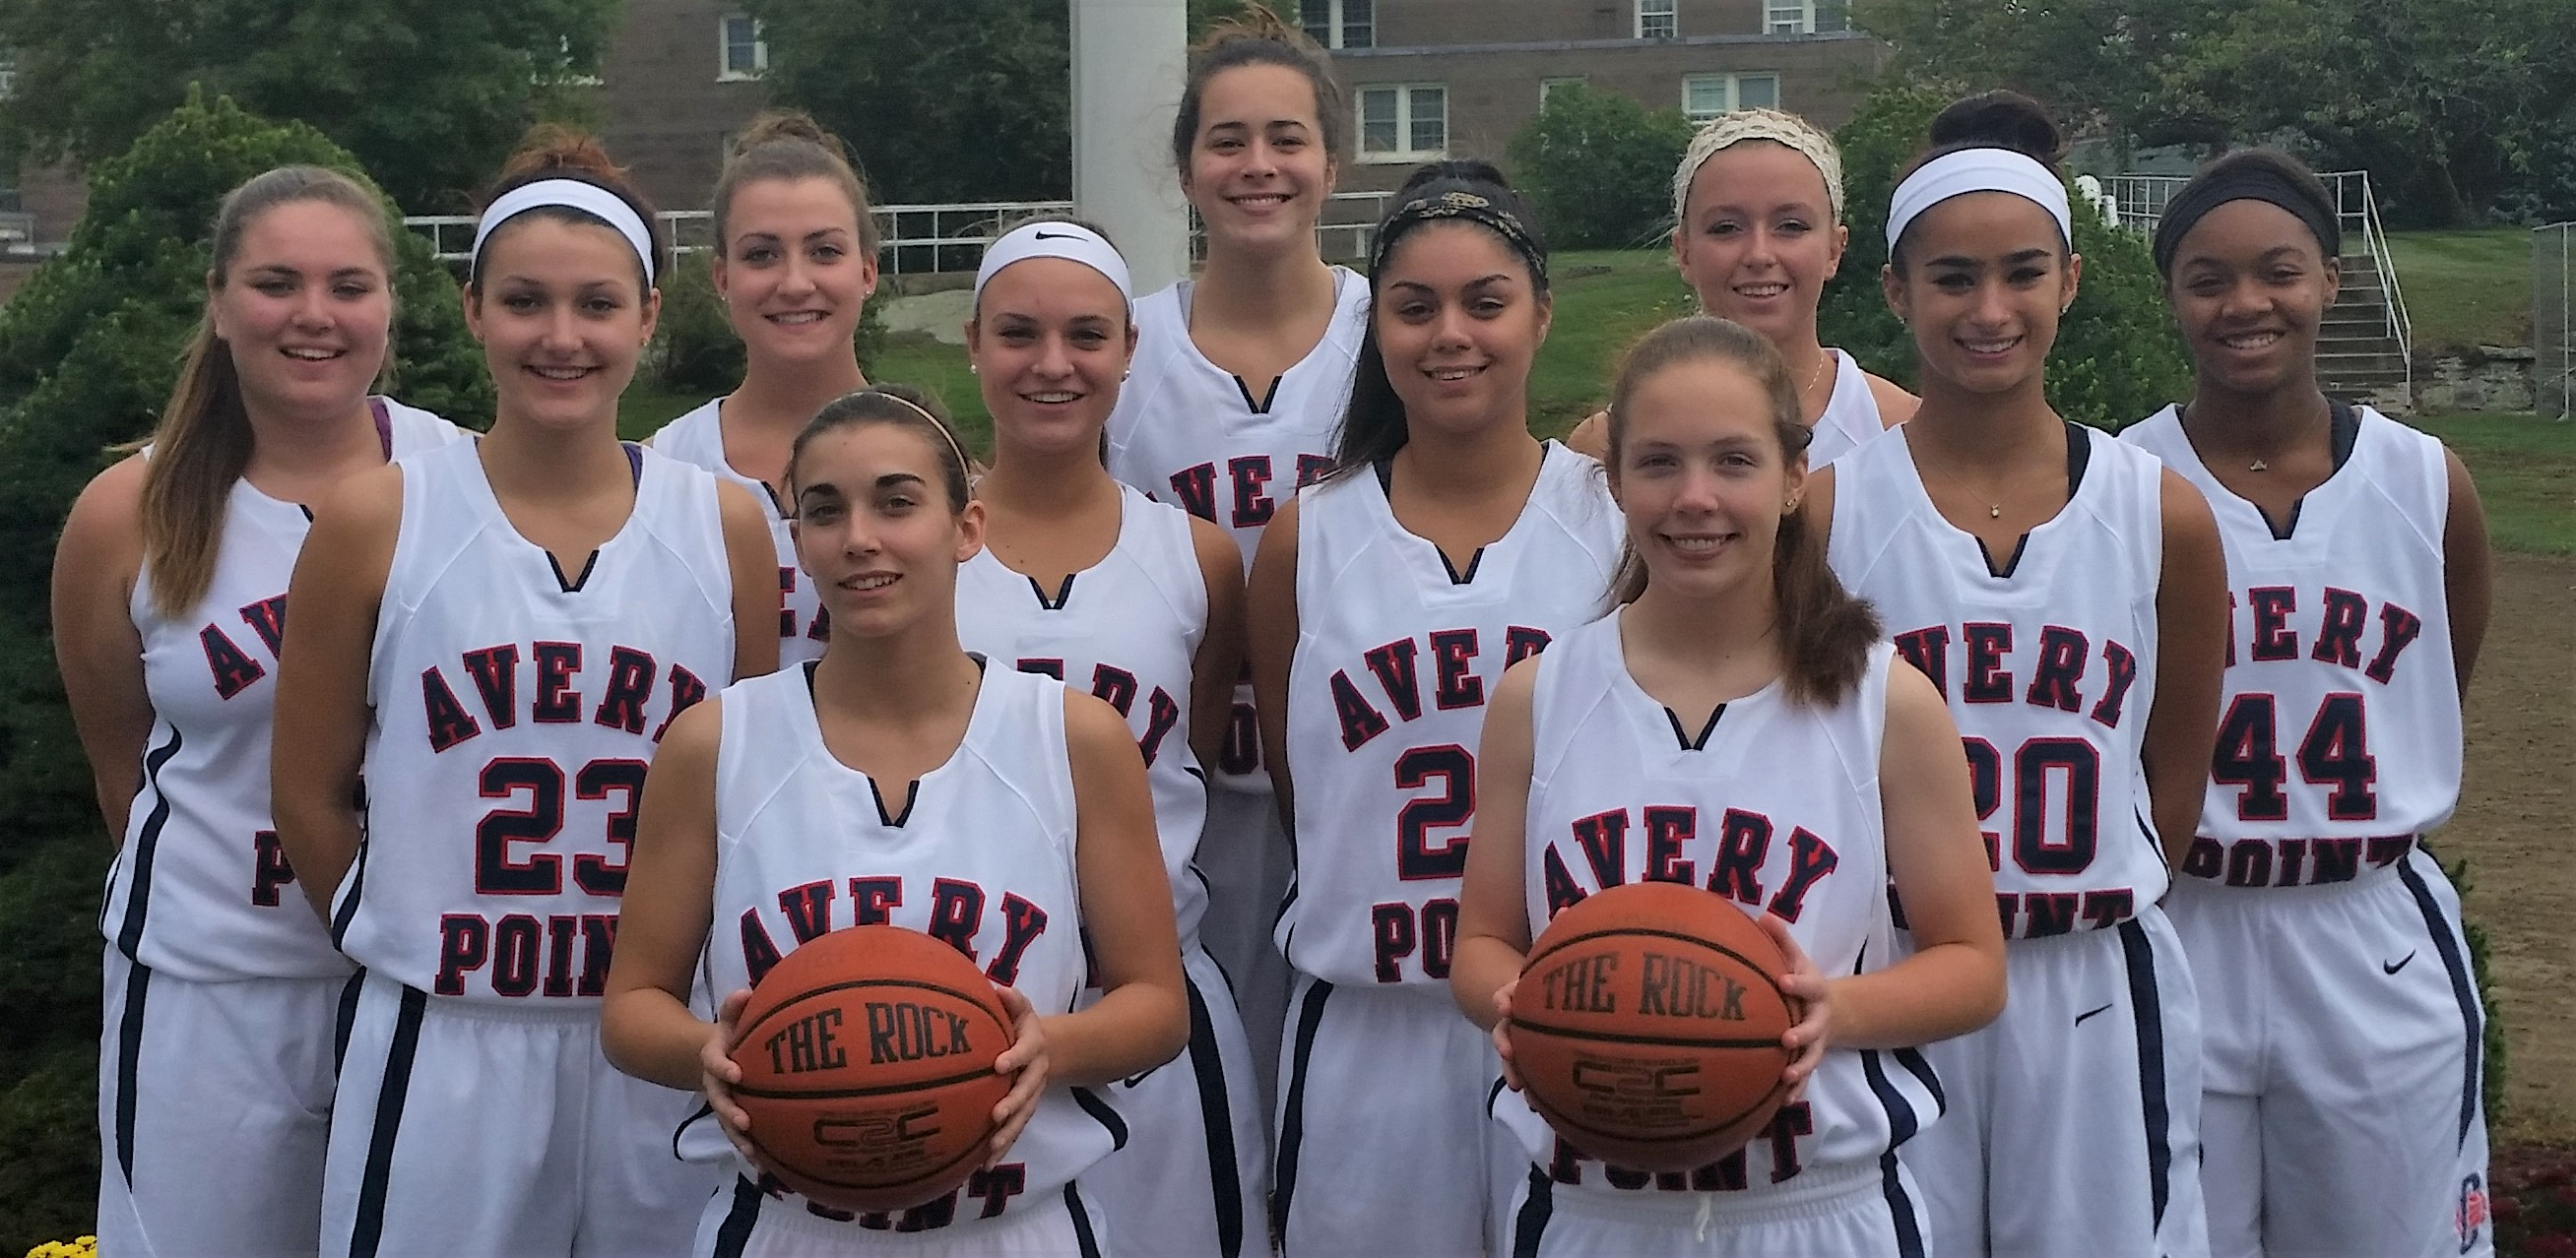 Women's Basketball Roster 2015-2016 | UConn-Avery Point ...